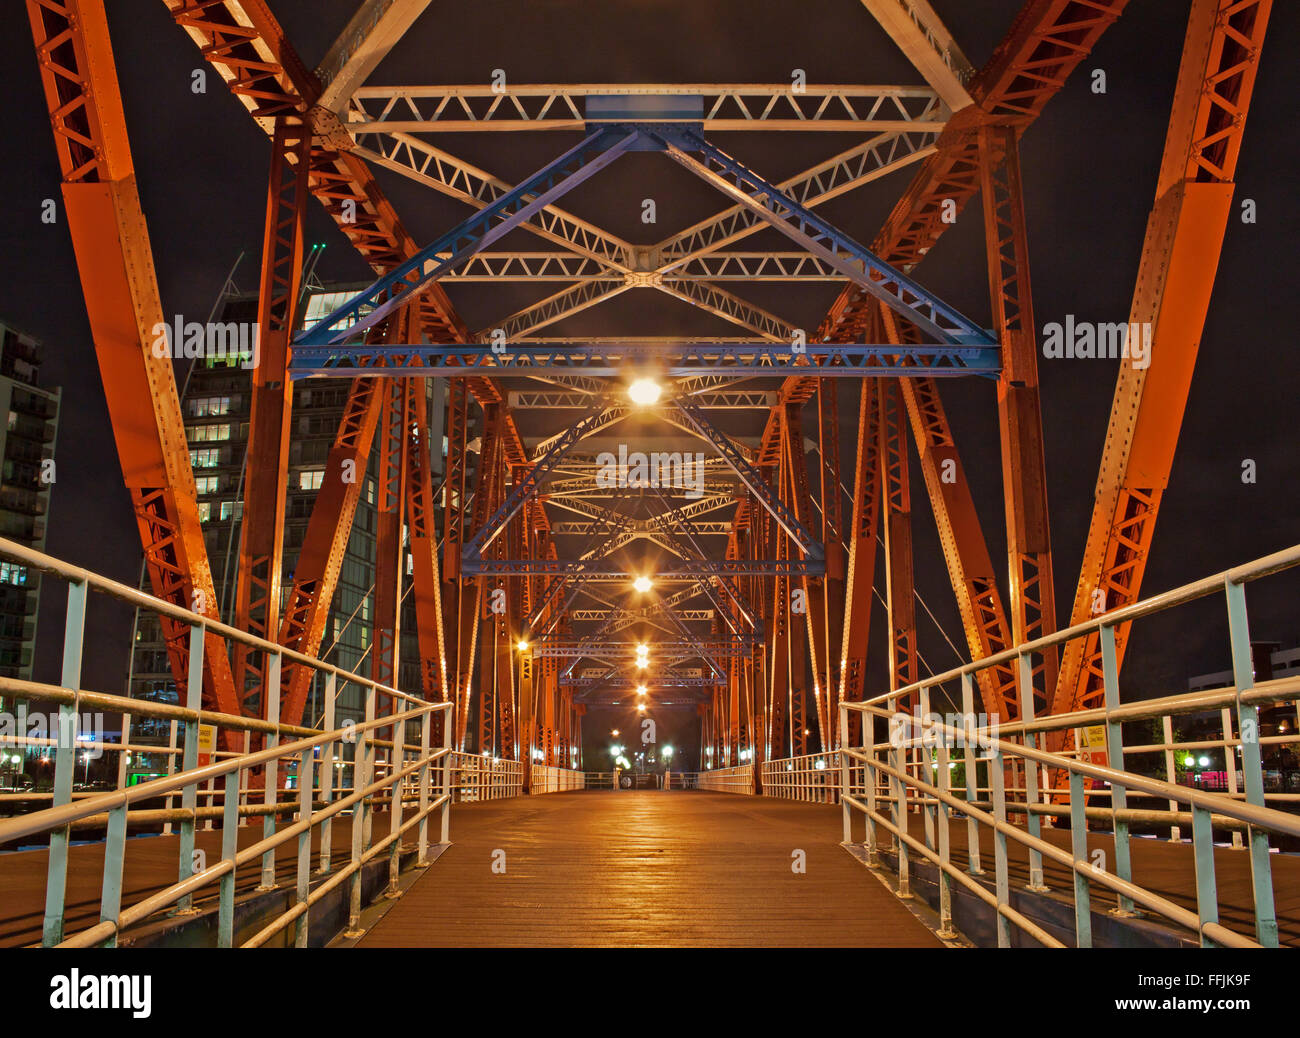 On the rotating, former railway, bridge at night, Salford Quays, Manchester - Stock Image